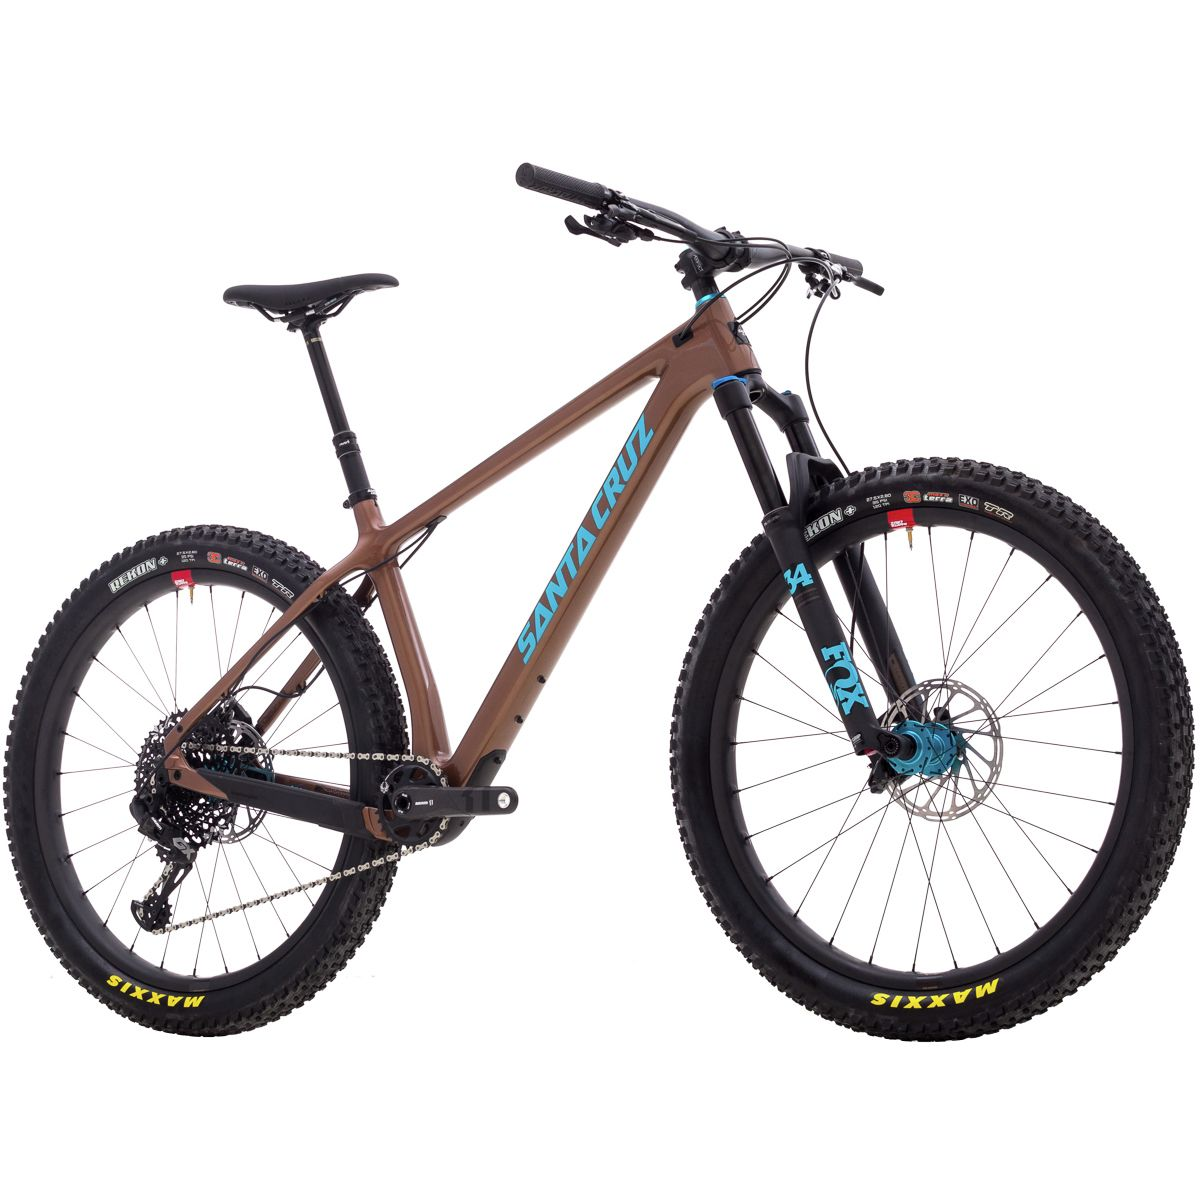 Santa Cruz Bicycles Chameleon Carbon Plus SE Reserve Complete